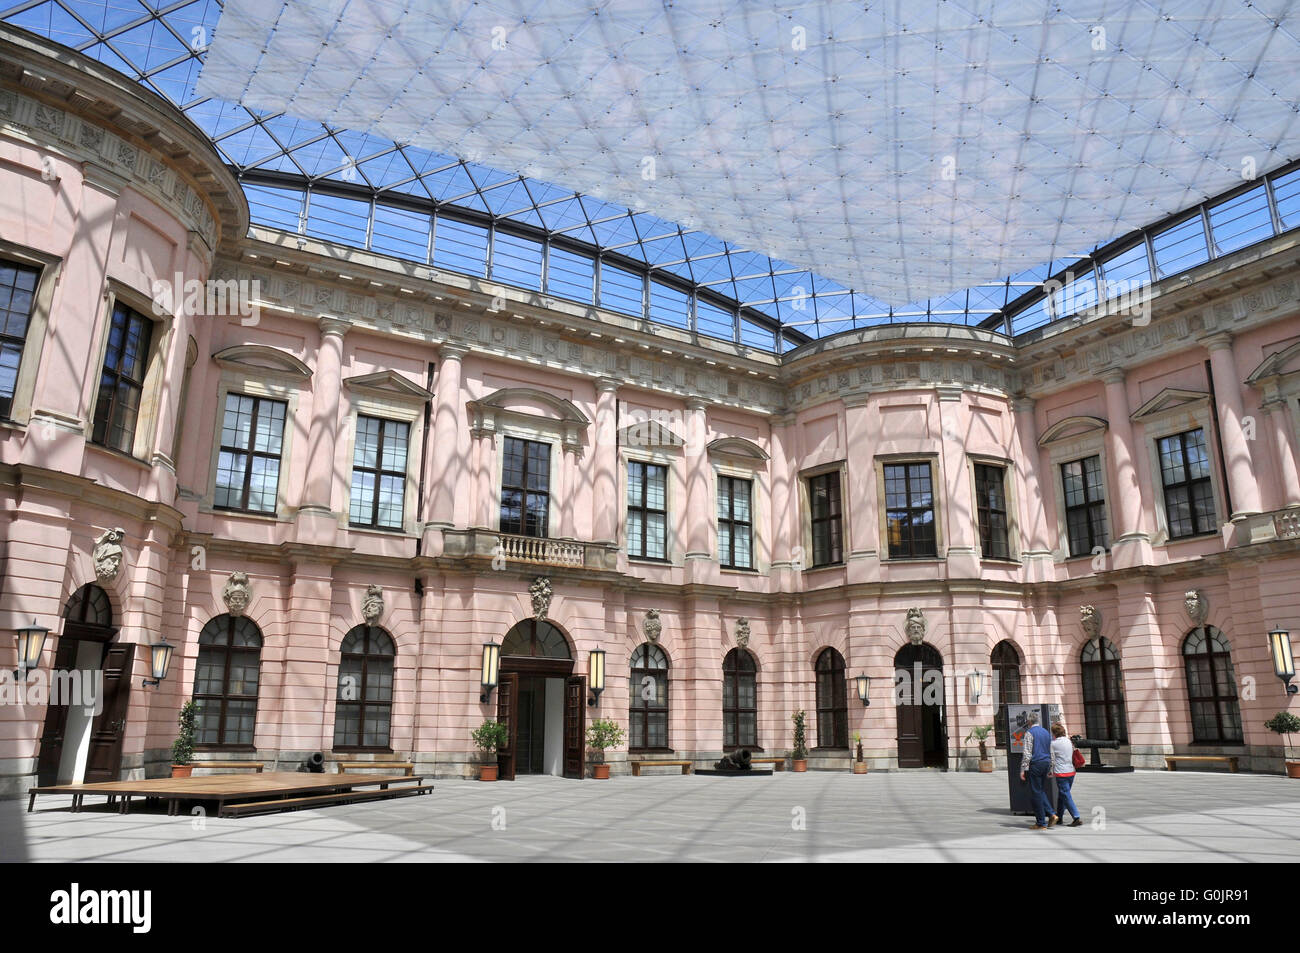 schluterhof inner courtyard deutsches historisches museum unter stock photo 103675629 alamy. Black Bedroom Furniture Sets. Home Design Ideas